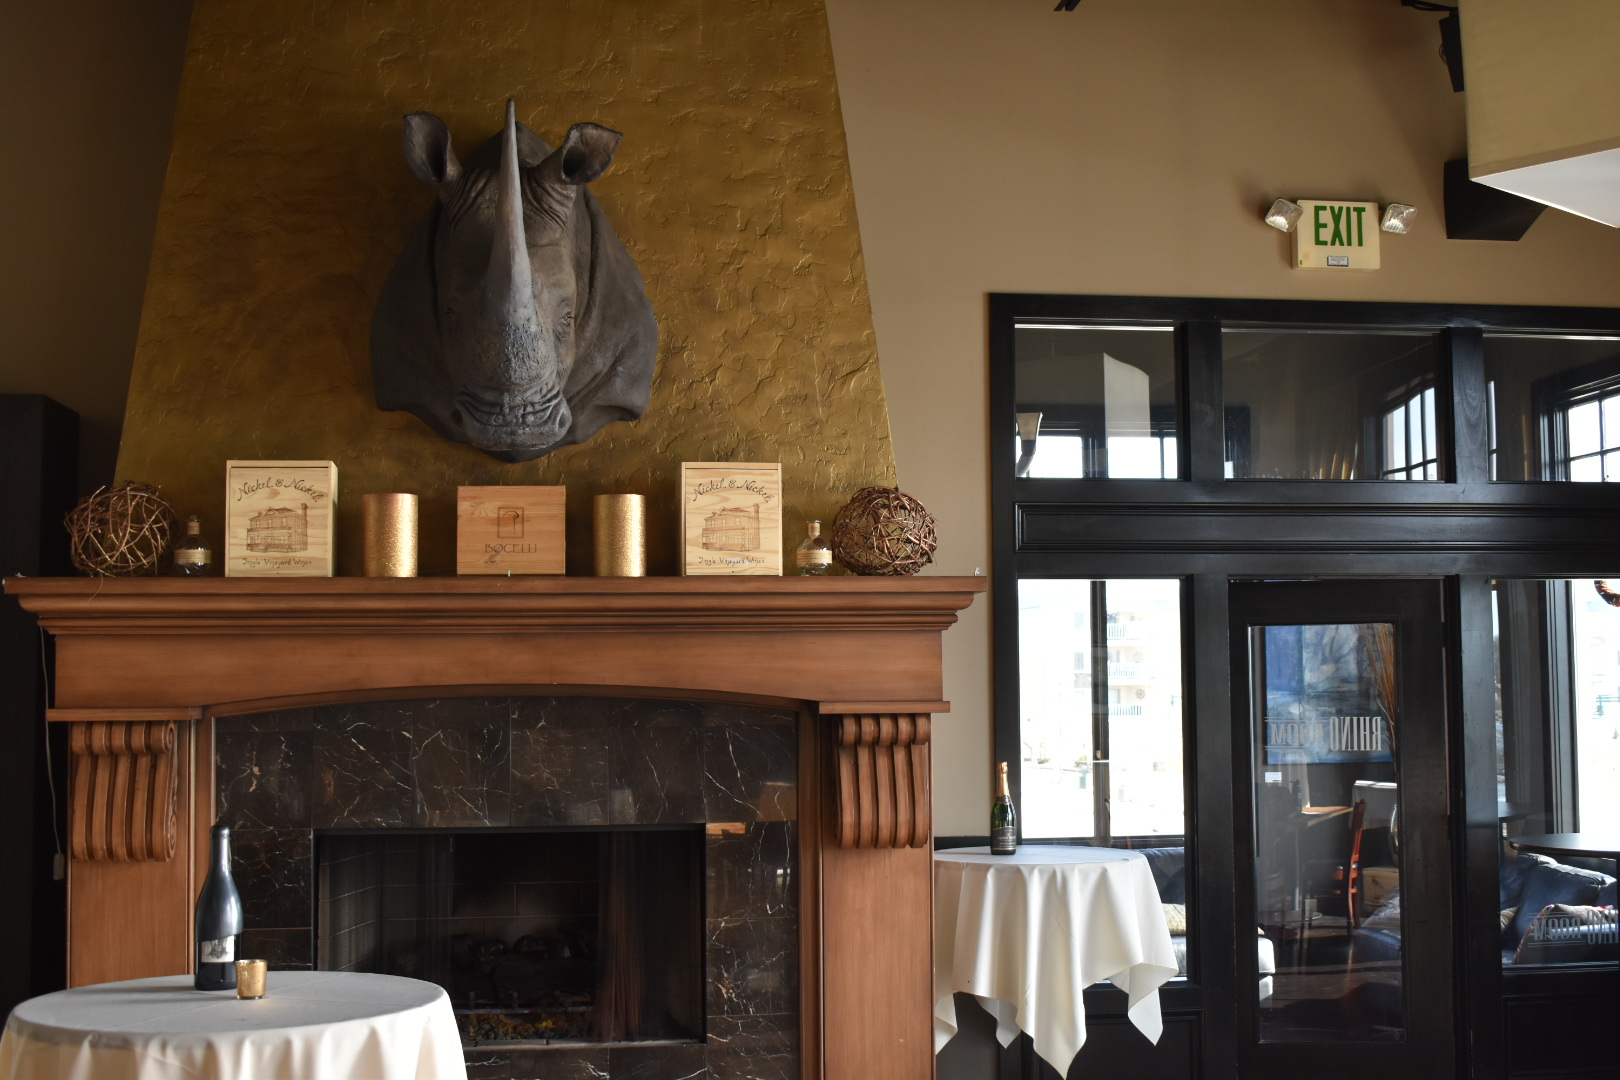 Rhino Room featuring fireplace with Rhino overhead and tables with wine bottles on top and exit door